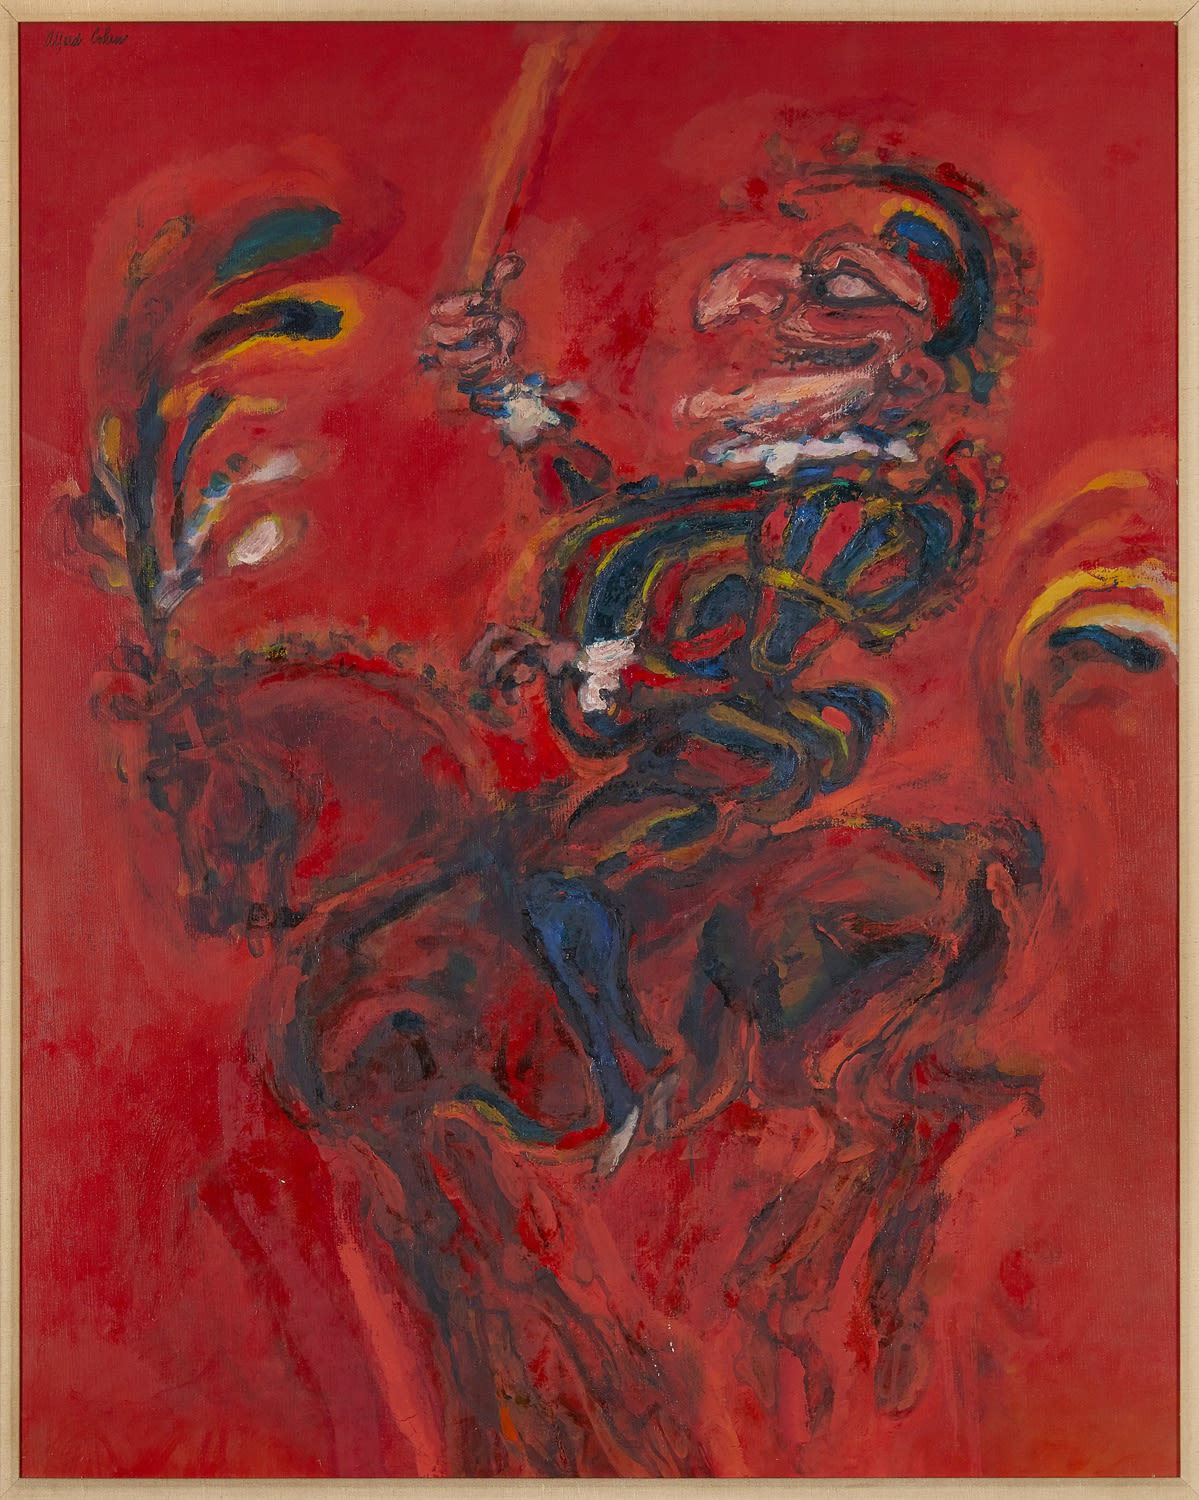 Alfred Cohen (1920-2001) The Entrance of Punch 1963 Oil on canvas 101.6 x 81.3 cm Alfred Cohen Art Foundation; gift of Michael and Jill Barrington © Estate of Alfred Cohen 2020